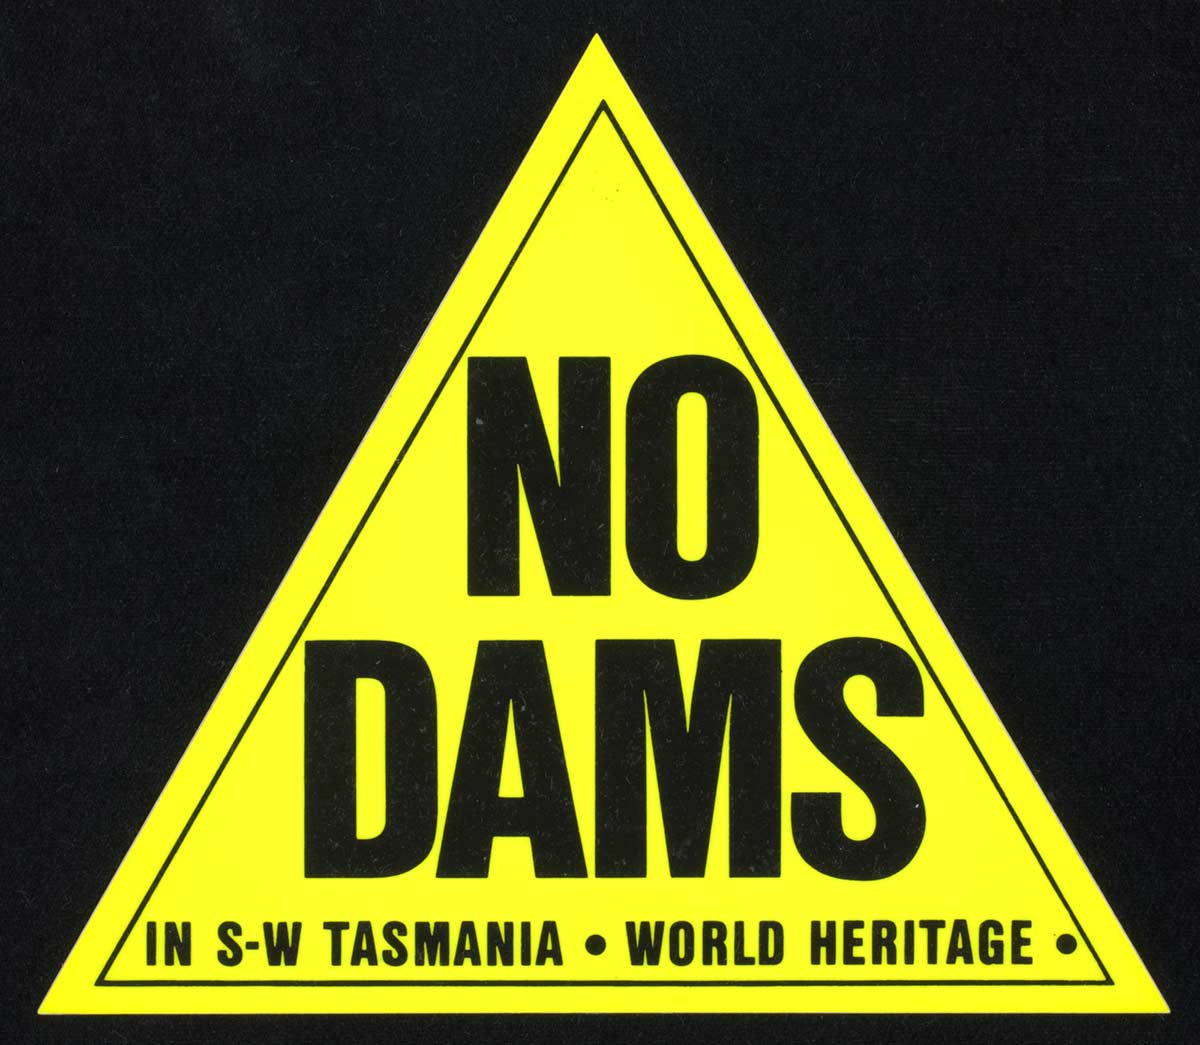 Yellow triangle on black background. Within the triangle are the words NO DAMS in capital letters. Beneath these are the words 'IN S W TASMANIA. WORLD HERITAGE. - click to view larger image